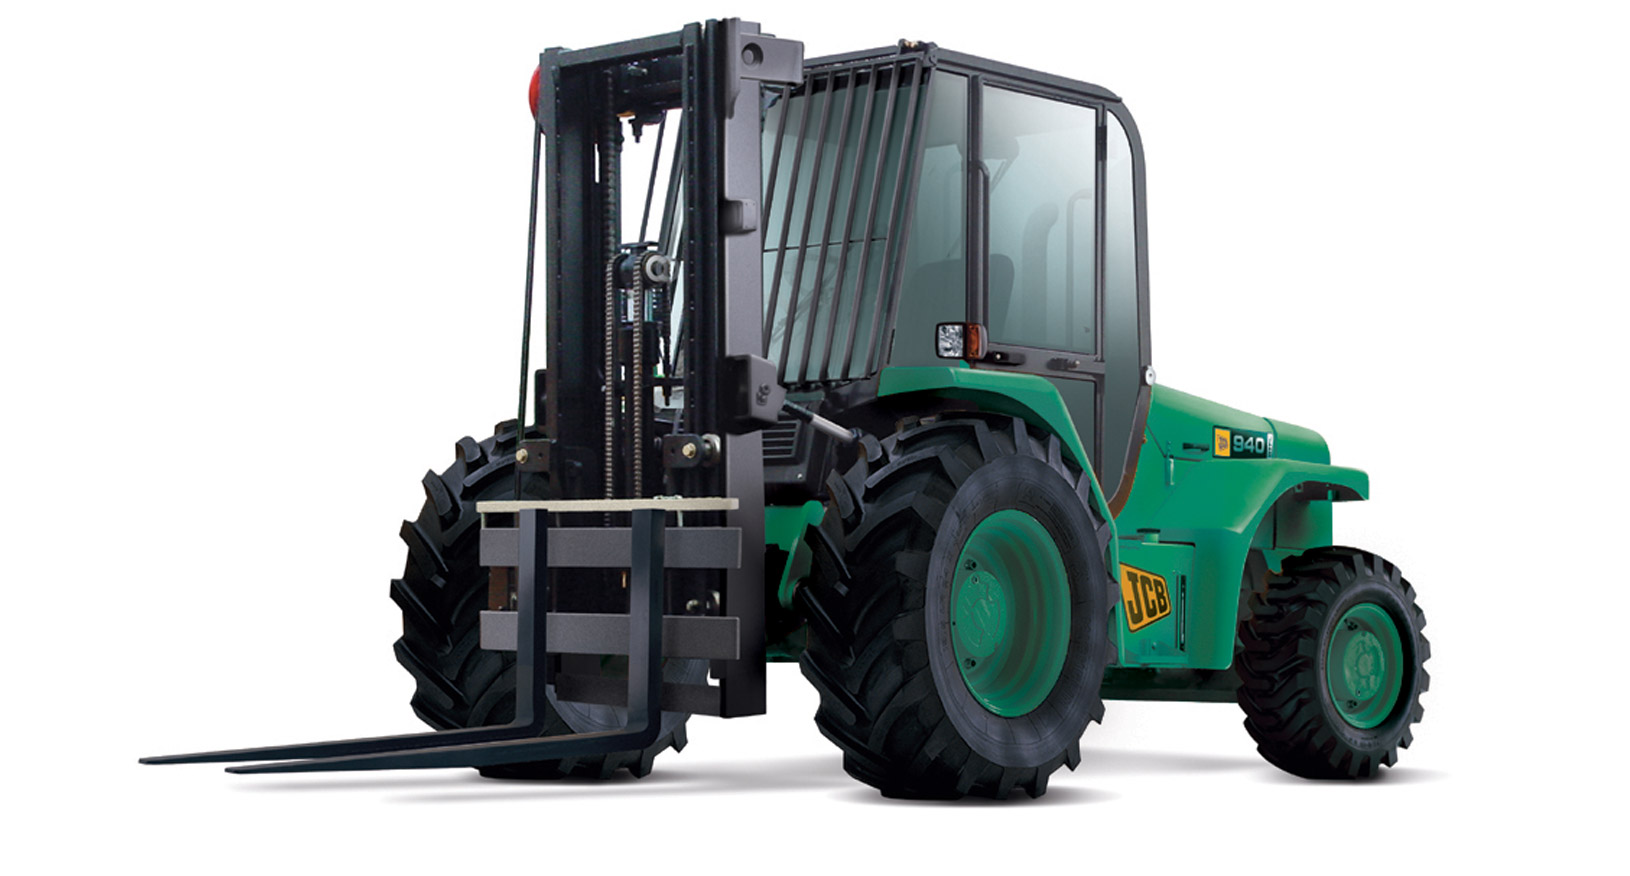 1.3T Two Wheel Drive Forklift